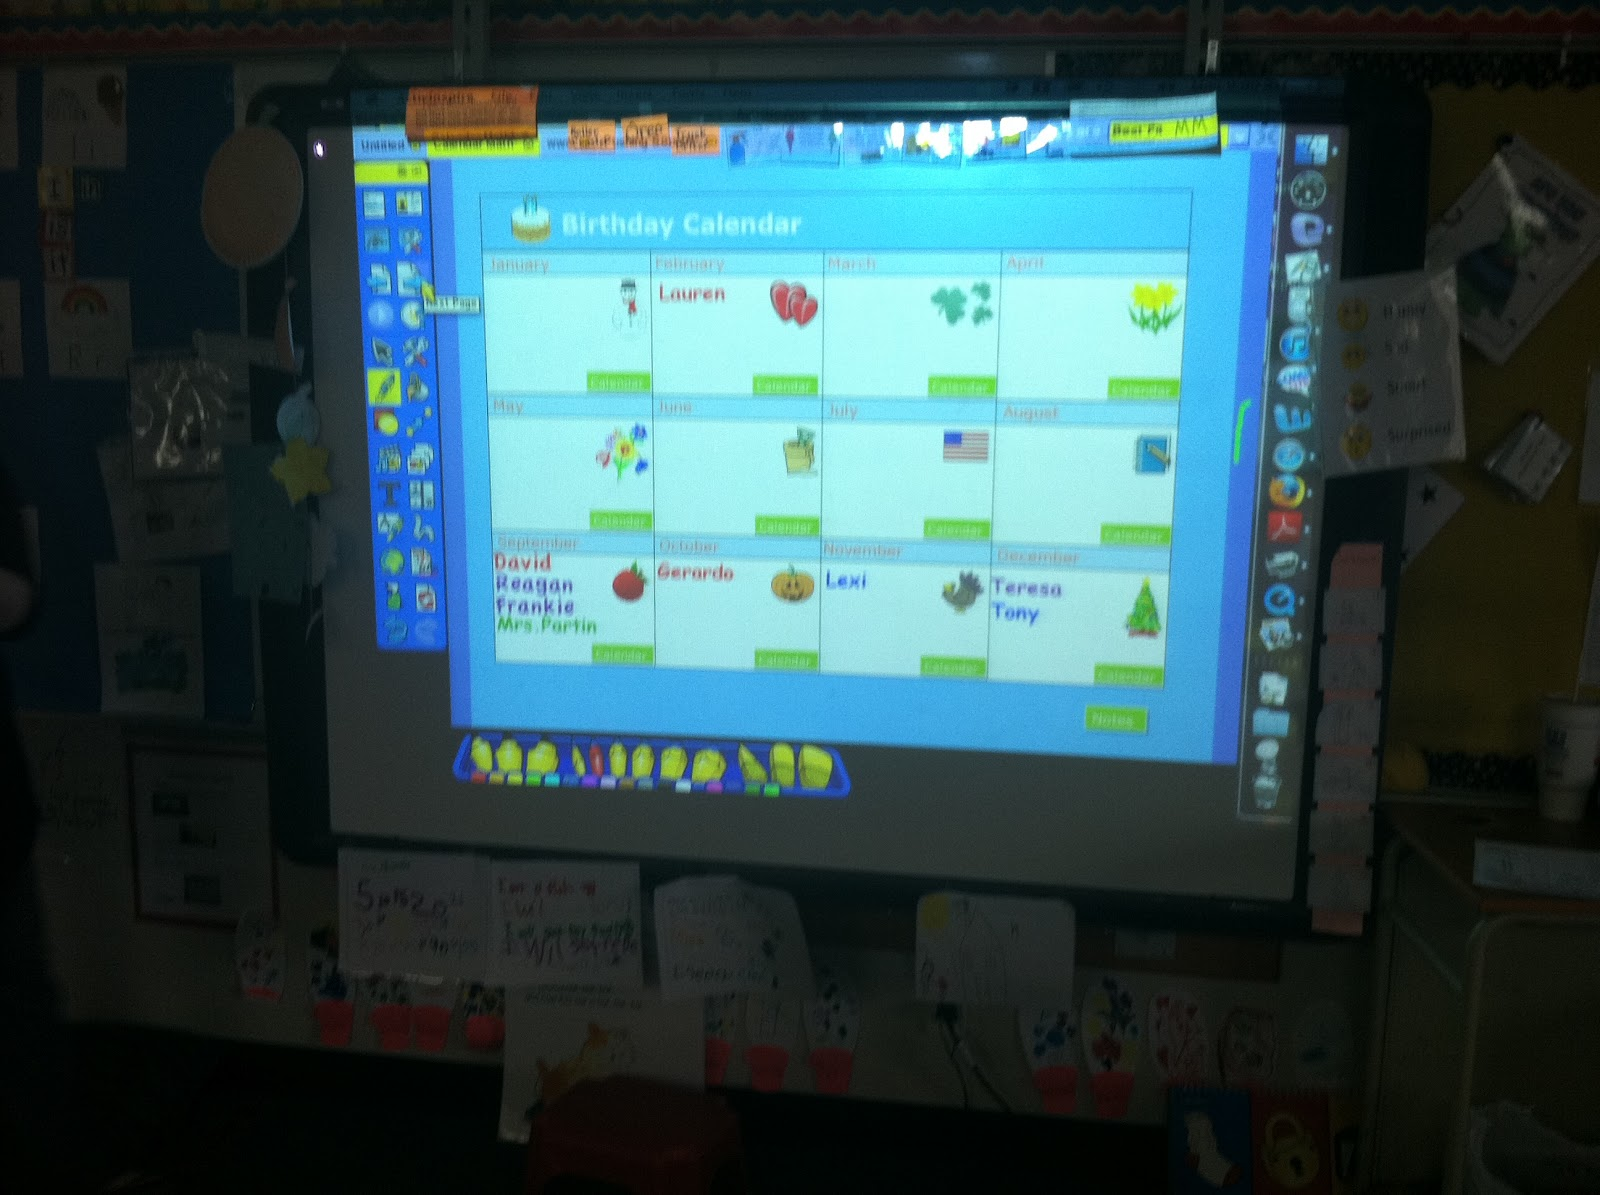 Kindergarten Calendar Interactive Whiteboard : Kindergarten smiles morning message calendar time